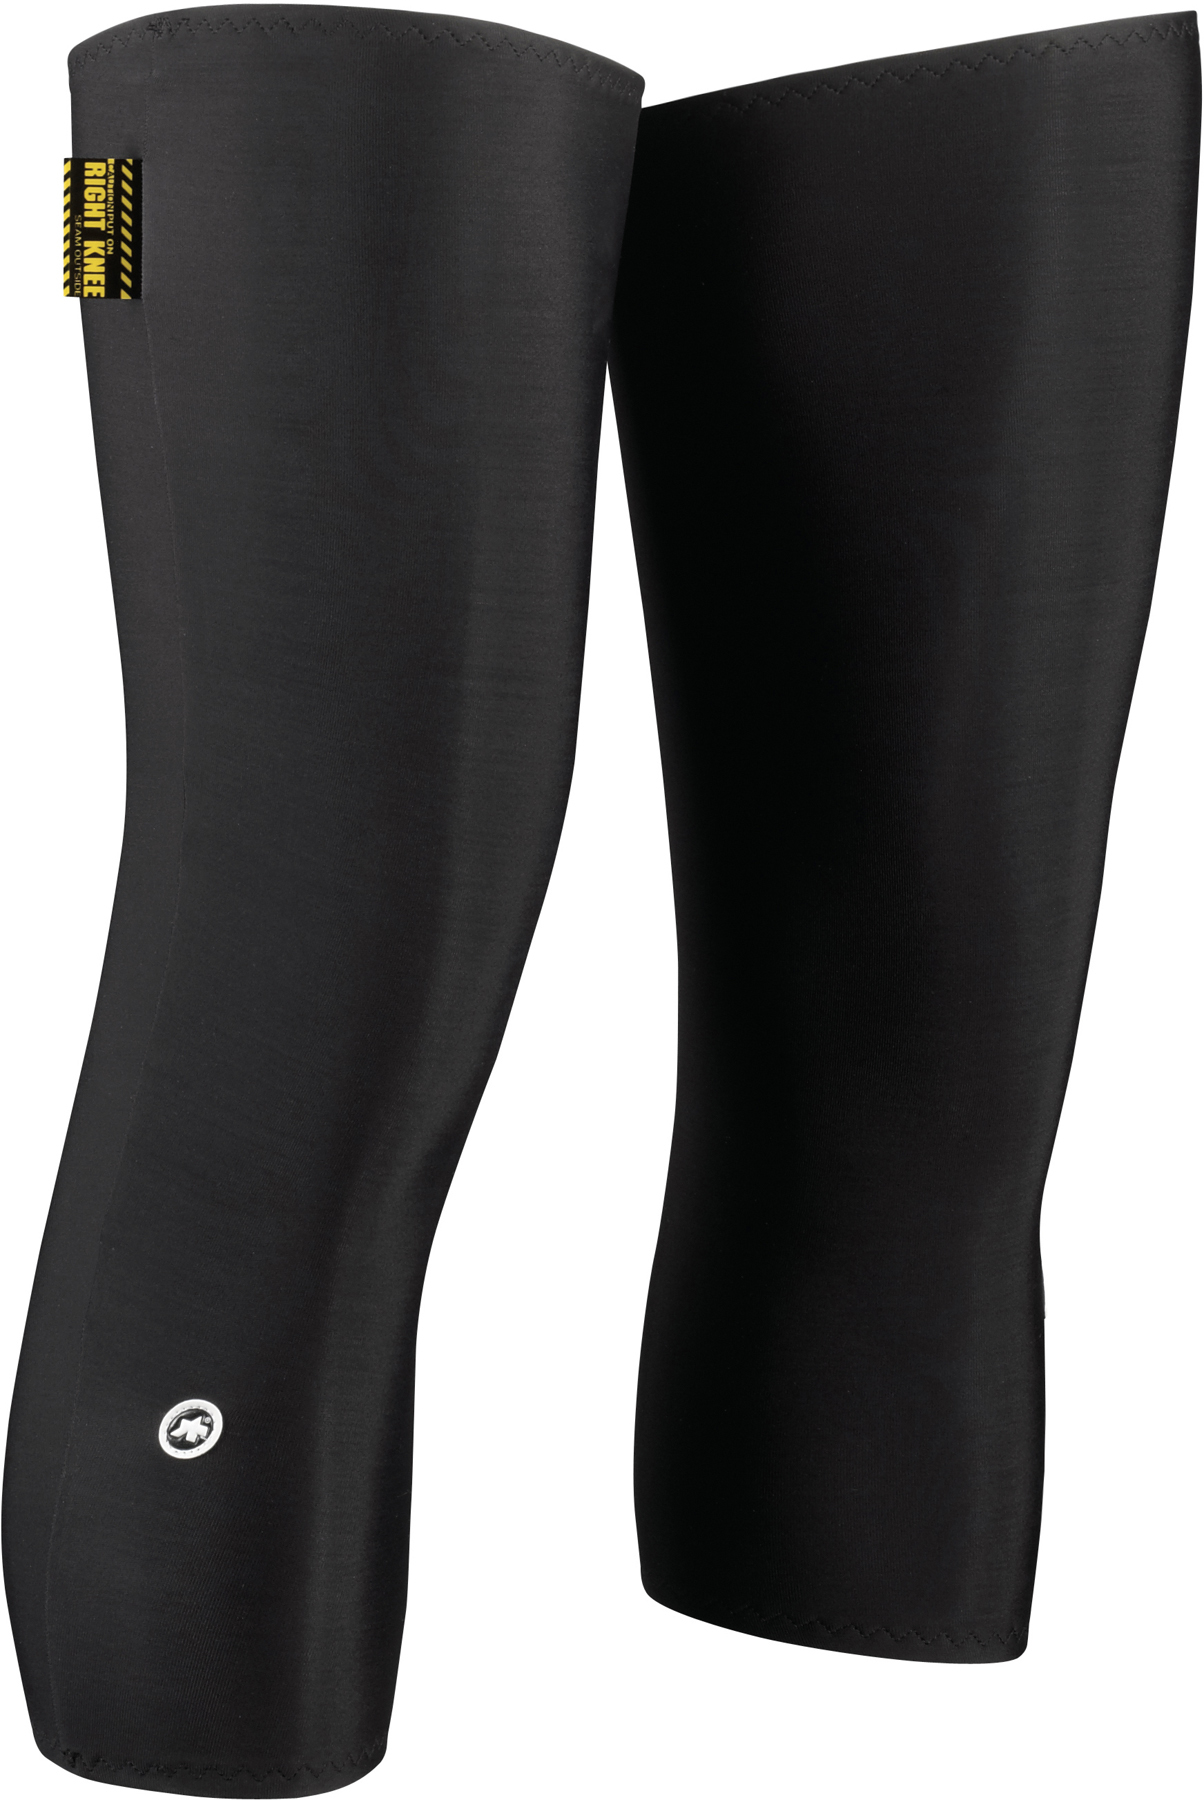 Assos KneeWarmers | Warmers